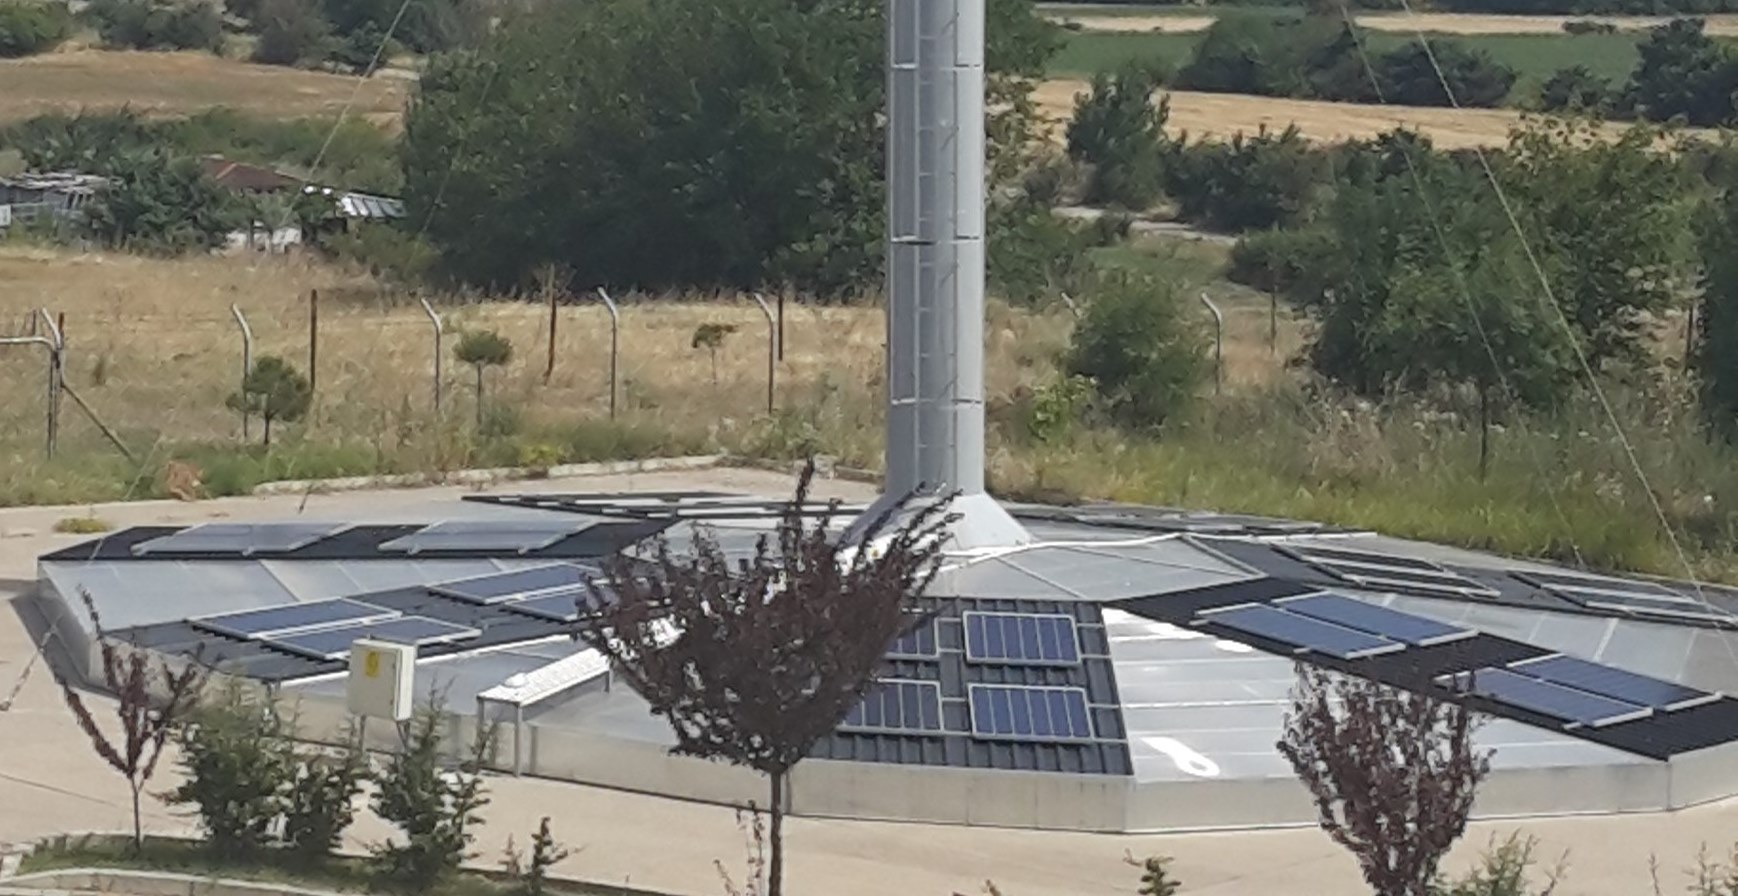 system solar power tower increases pv efficiency and utilizes the pv heat